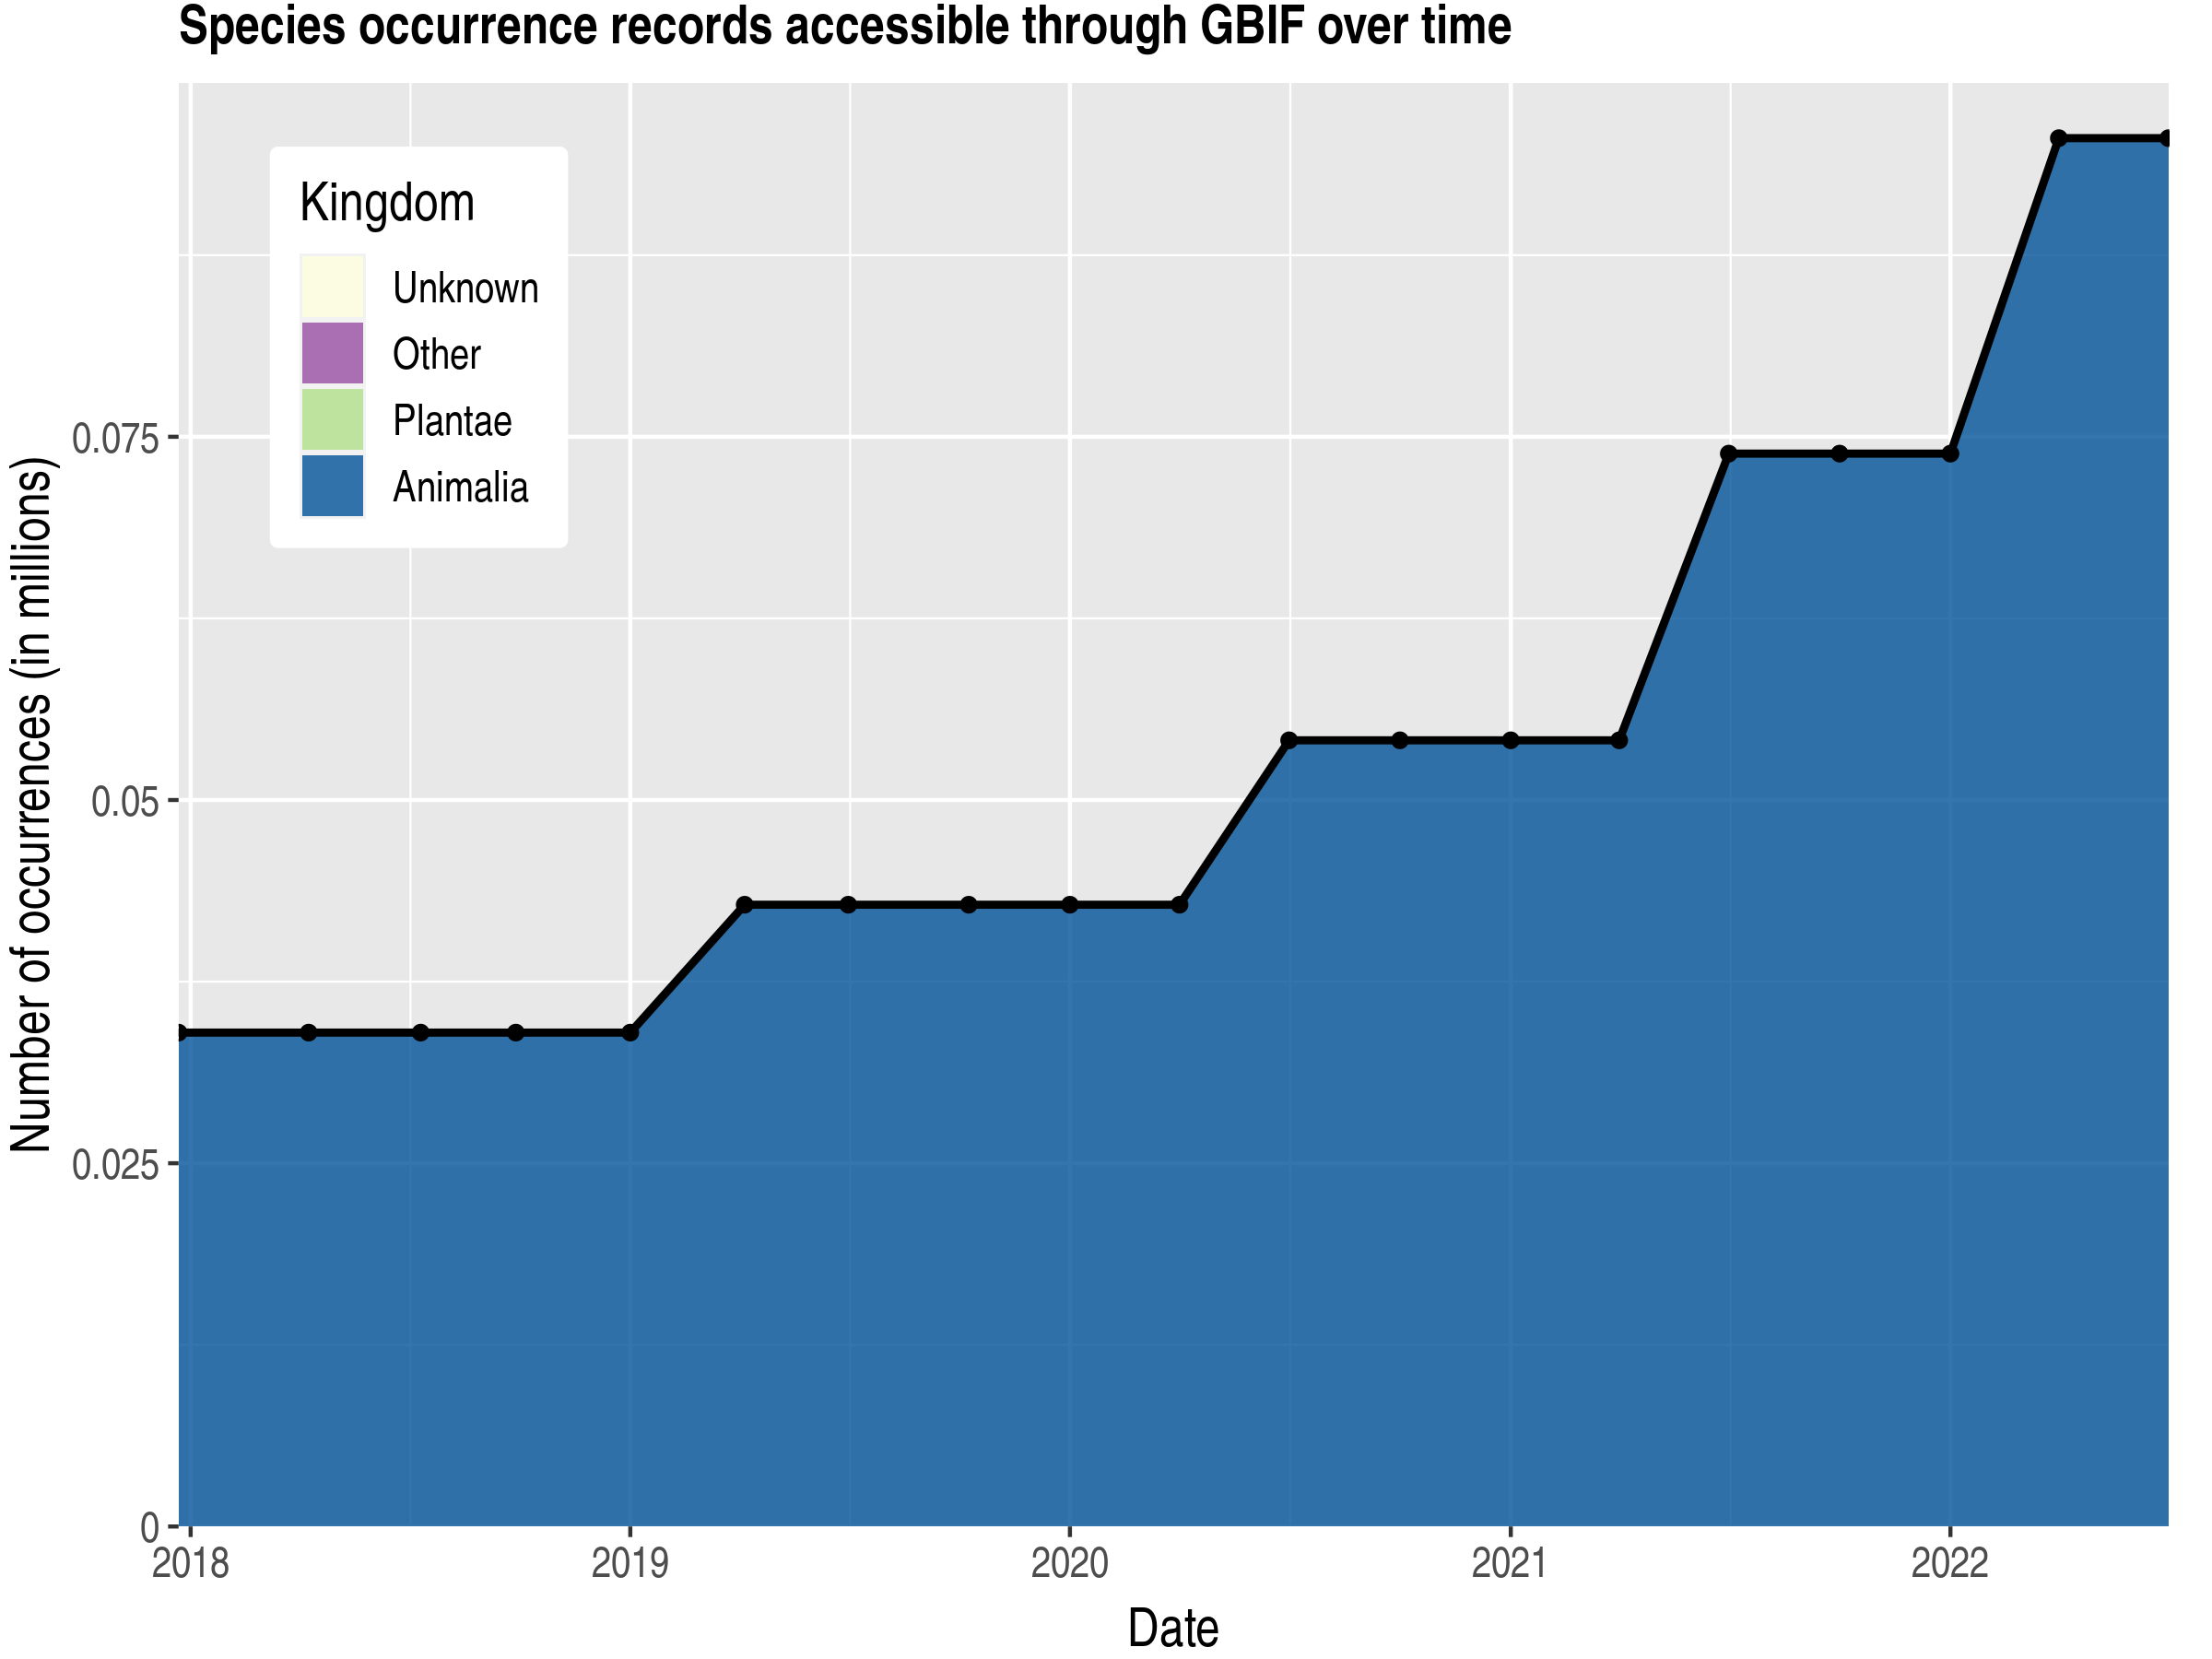 Data trend of records by kingdom published by Saudi Arabia